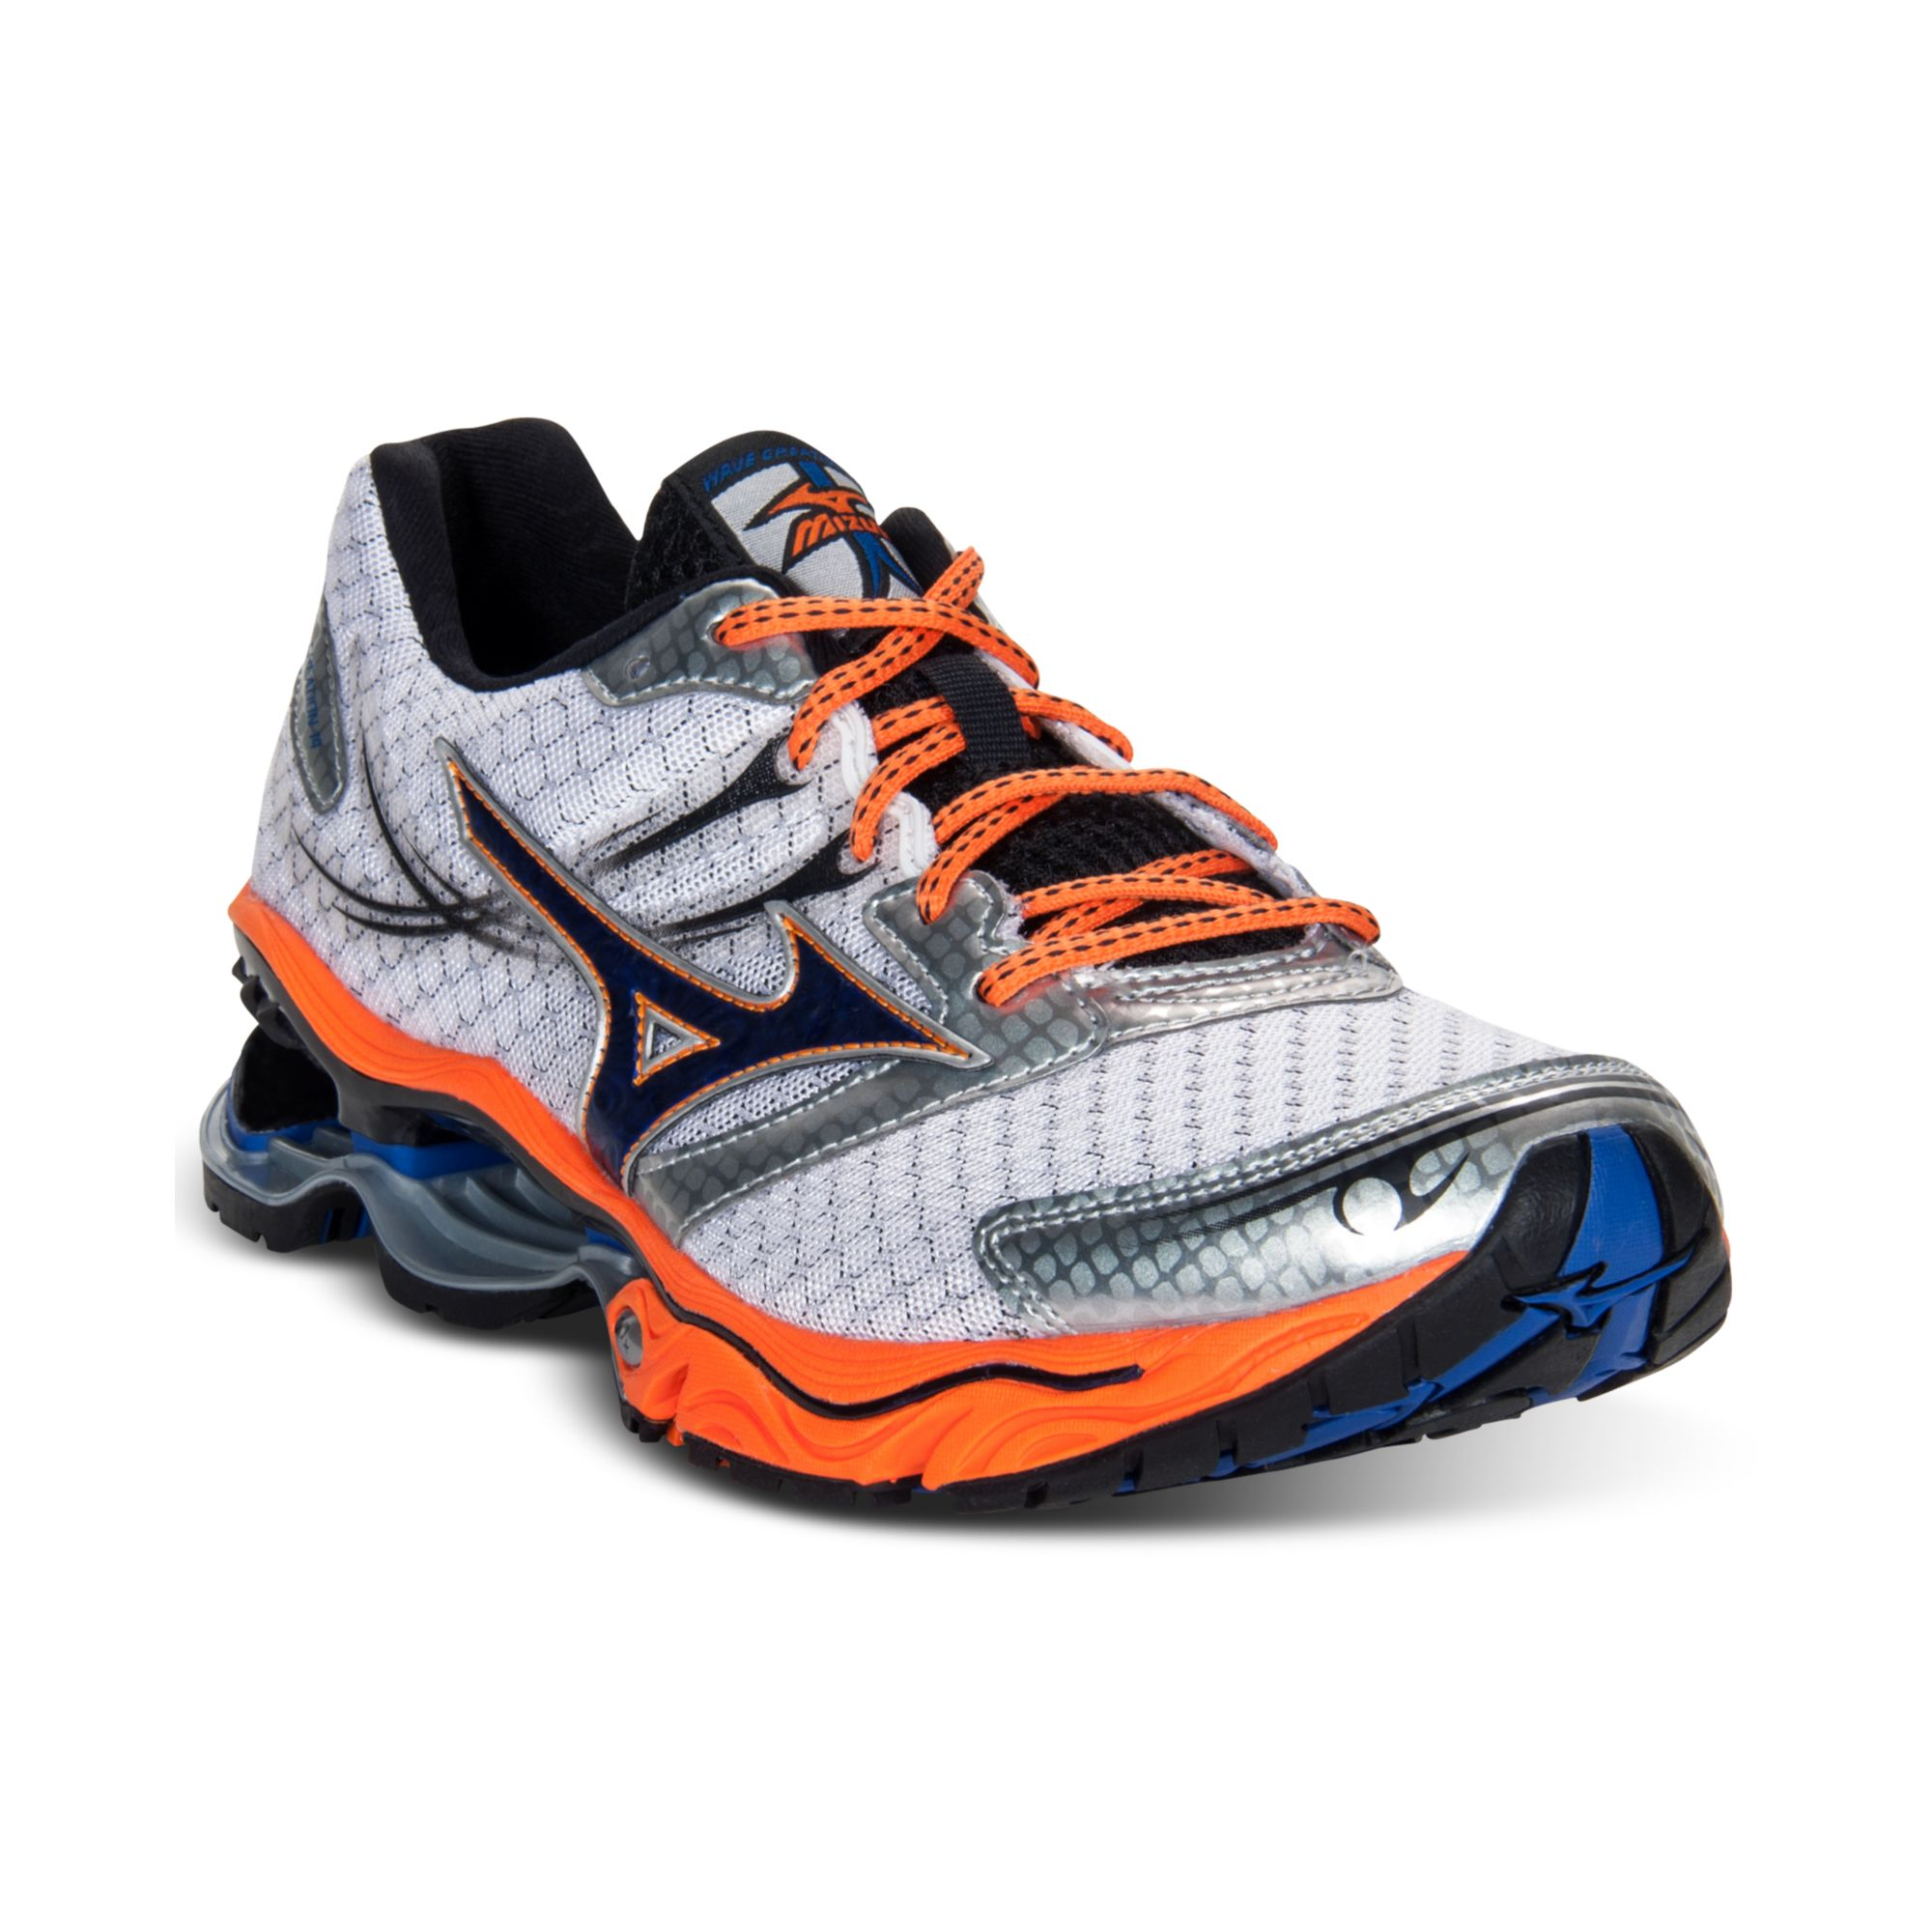 check out 3c6cc bbbf2 Mizuno Wave Creation 14 Running Sneakers in Blue for Men - Lyst